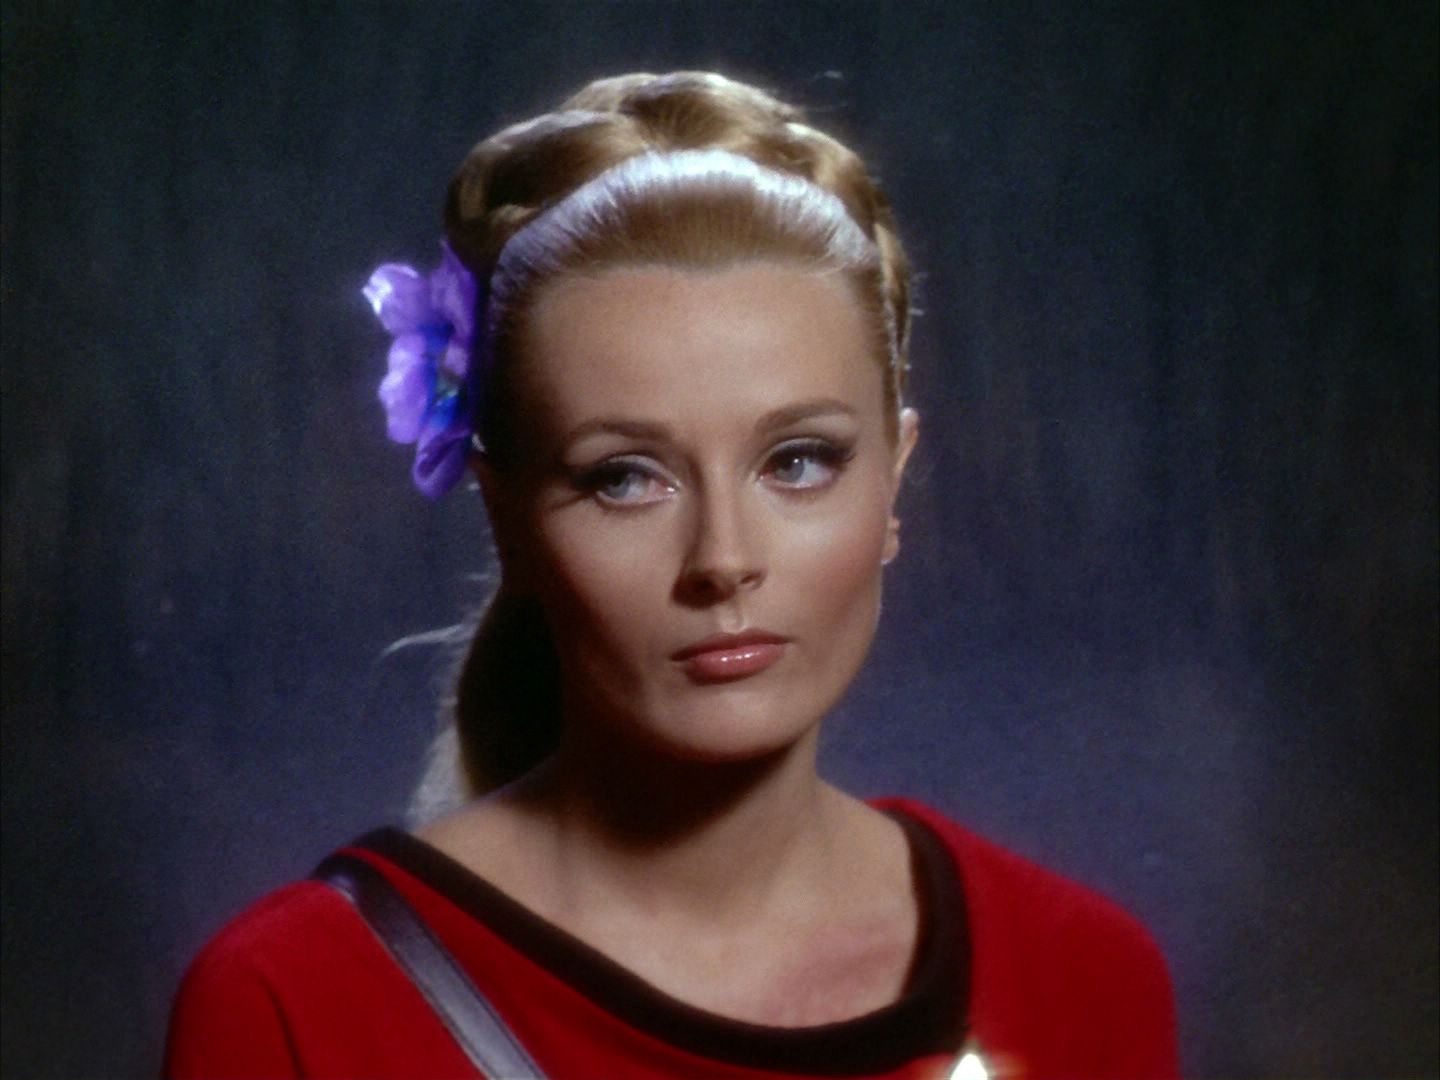 Watch Celeste Yarnall born July 26, 1944 (age 74) video